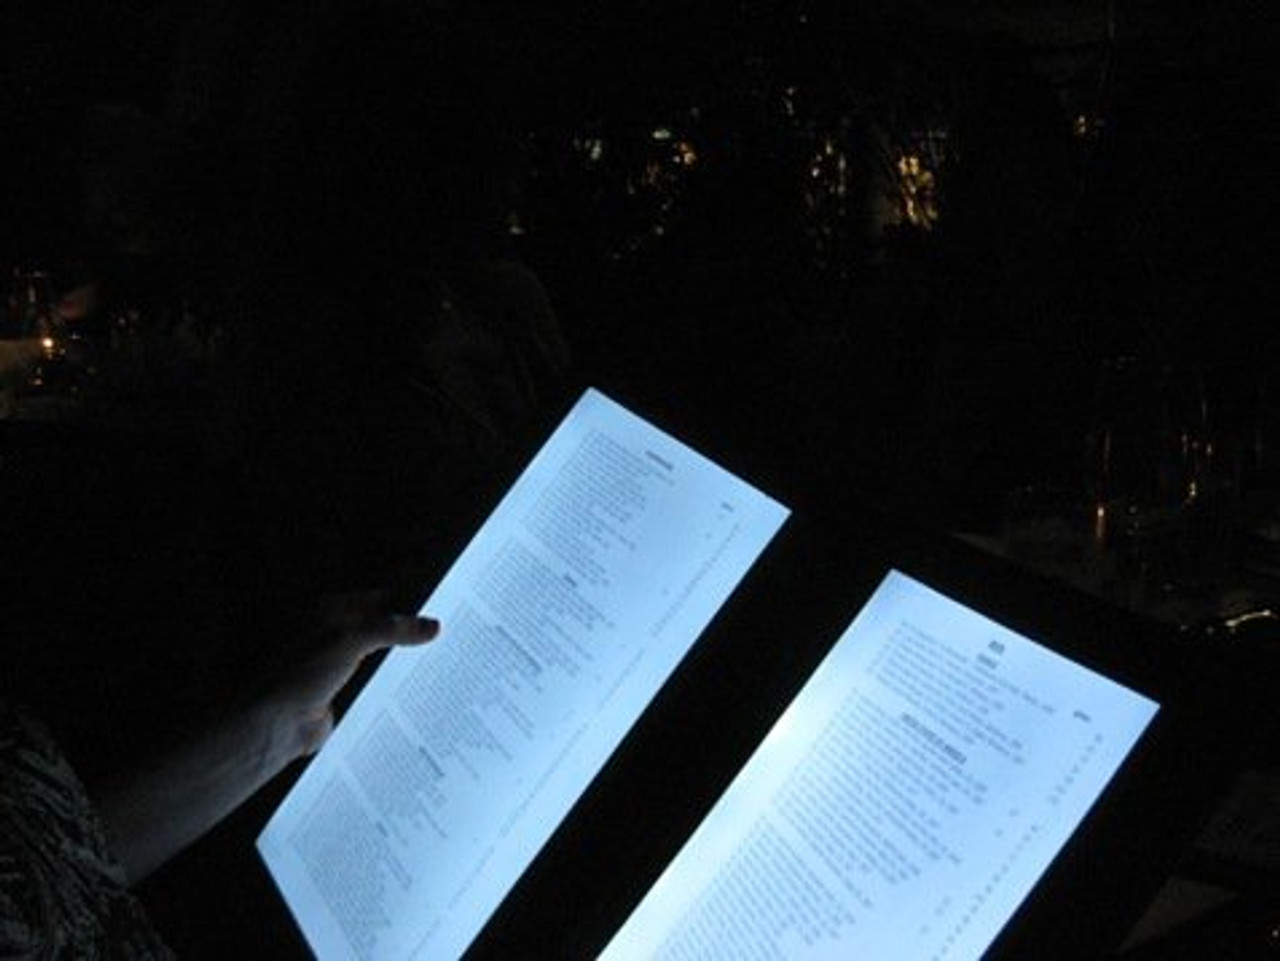 LED BACK LIT MENUS, LED MENUS, GLOW MENU,  back lit menu covers, check presenters, table stands, back lit menus, dine a light, glow in the dark, glowing menus, grandstand, led menus, light up menus, lighted menu, lit check presenters, lit menus